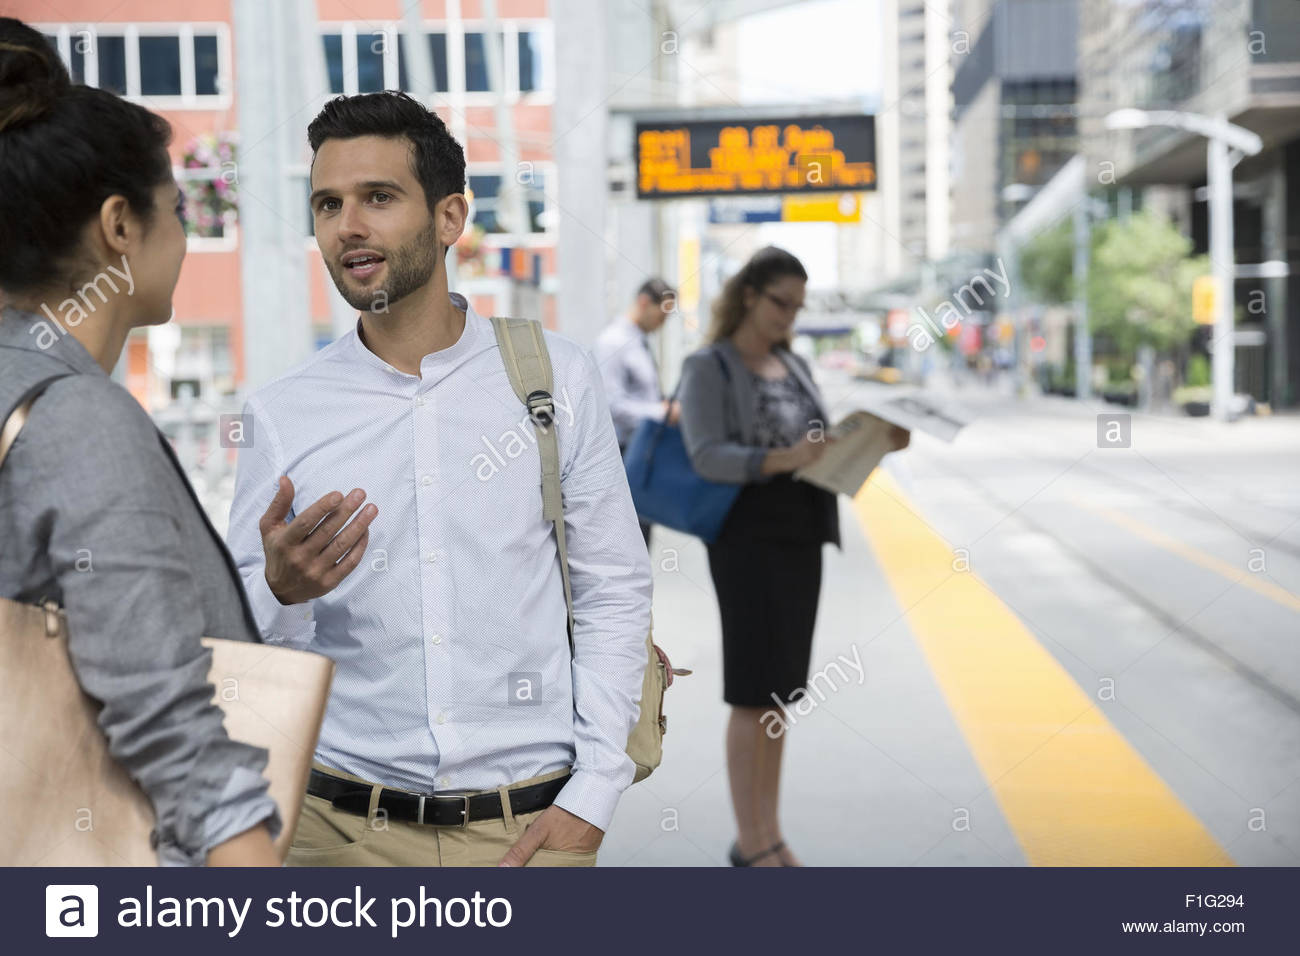 Business people talking and waiting train station platform - Stock Image